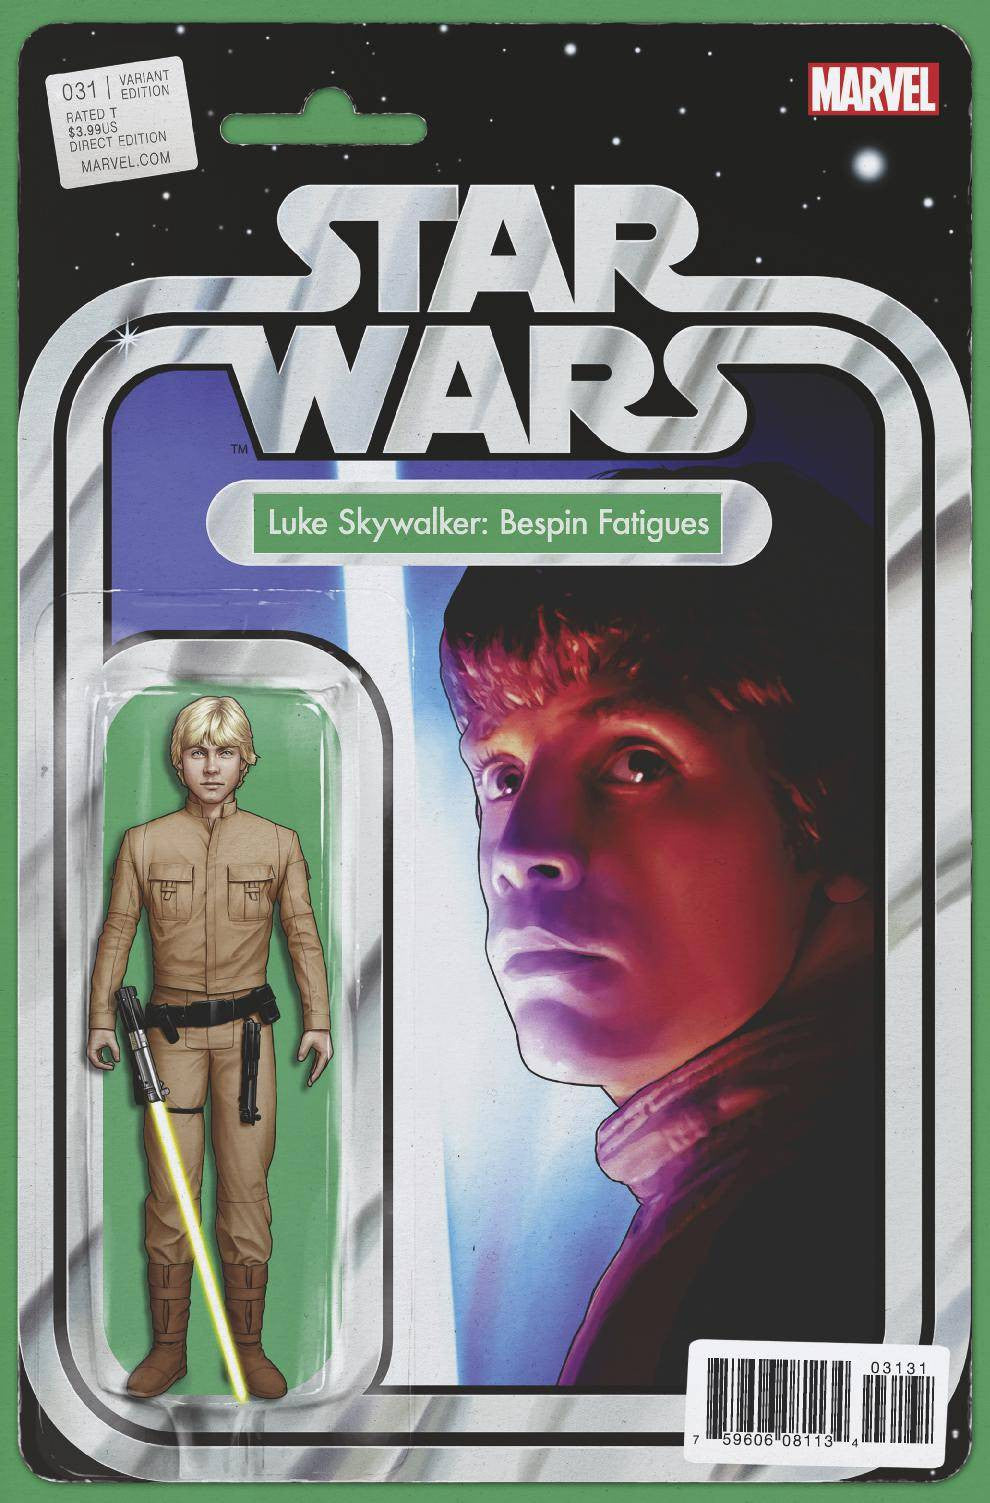 STAR WARS #31 CHRISTOPHER ACTION FIGURE VAR